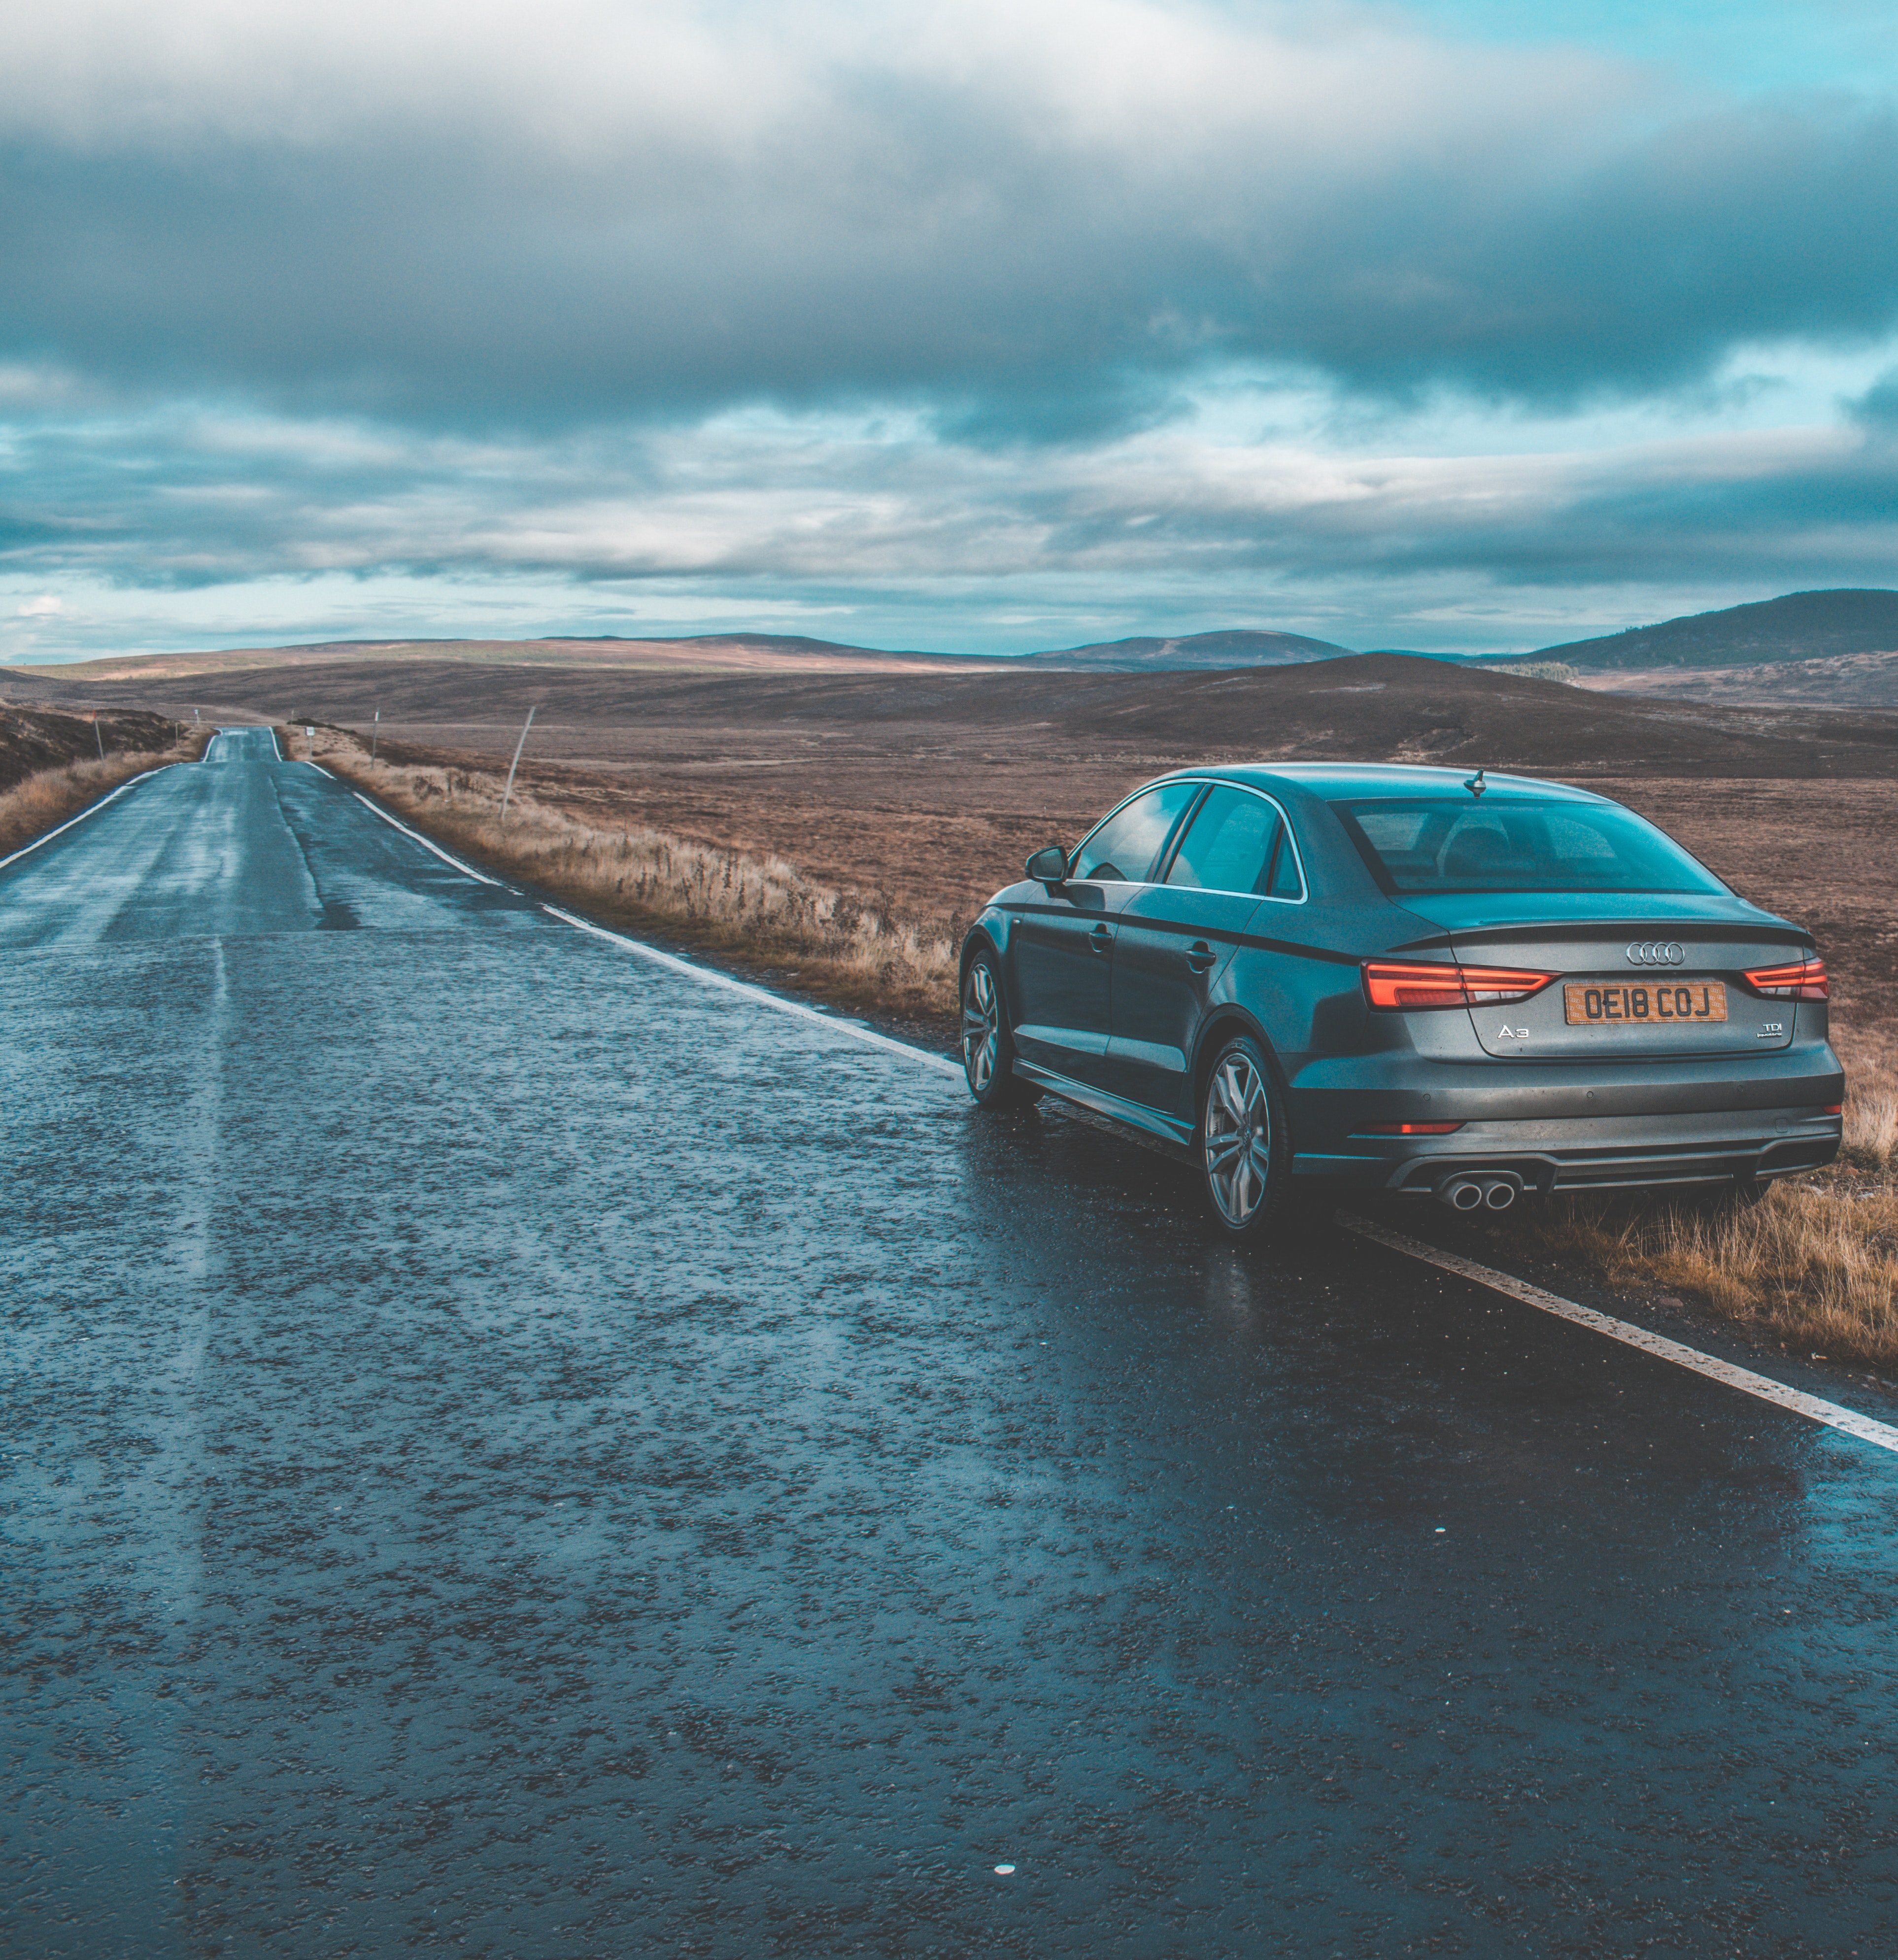 Free stock photo of a3, audi, highlands